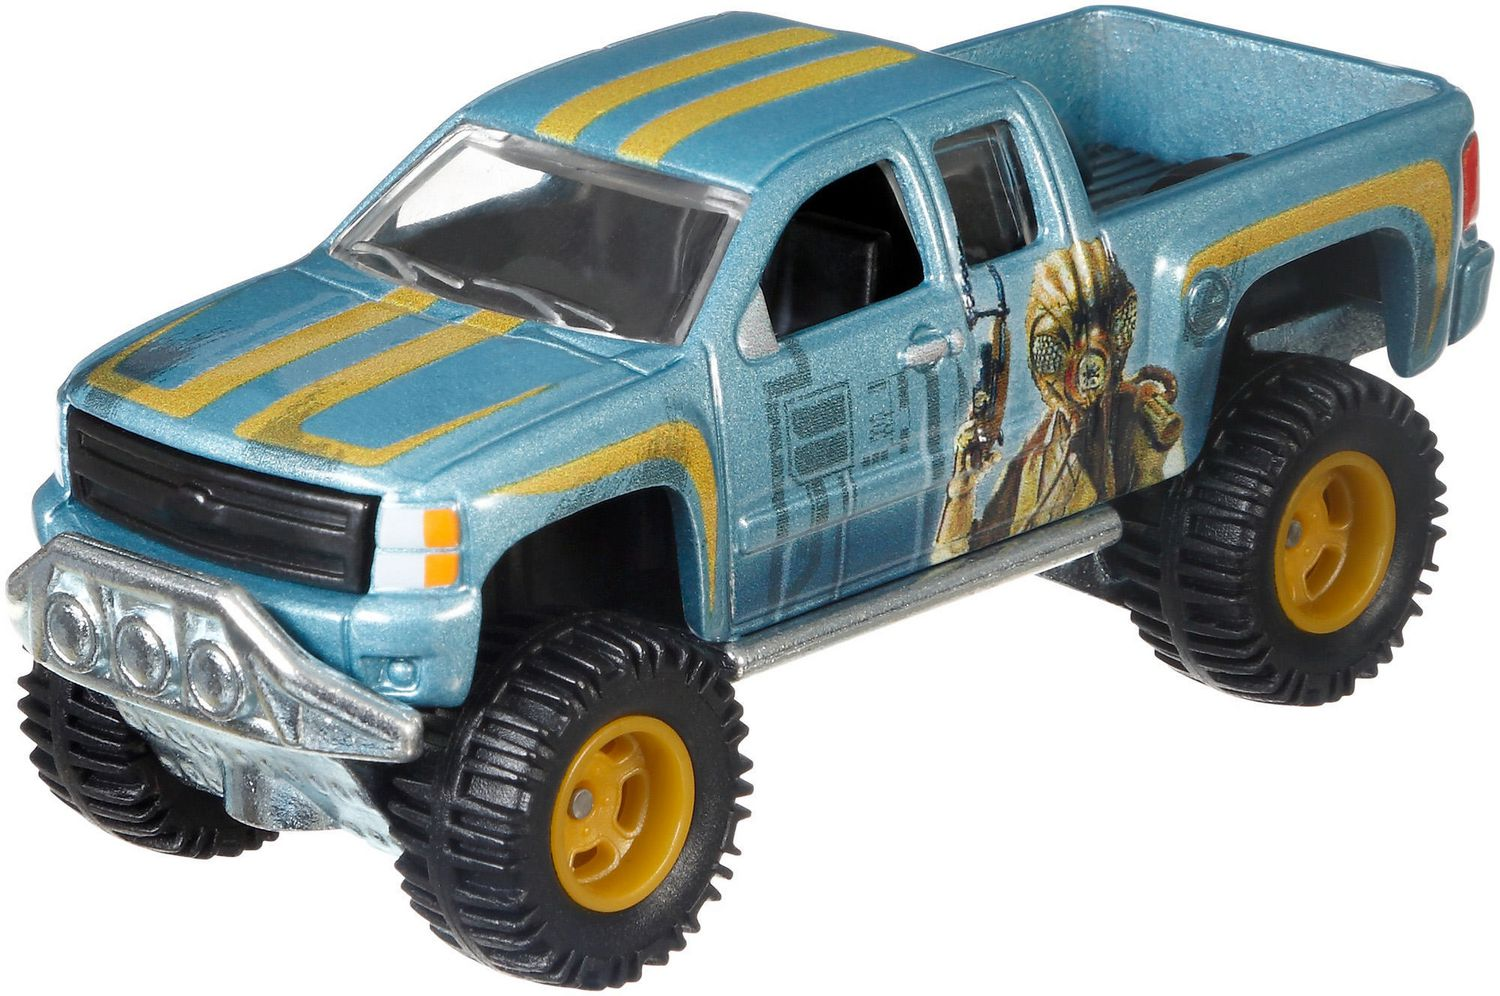 Hot Wheels Star Wars Zuckuss Chevy Silverado Off Road Vehicle Walmart Canada